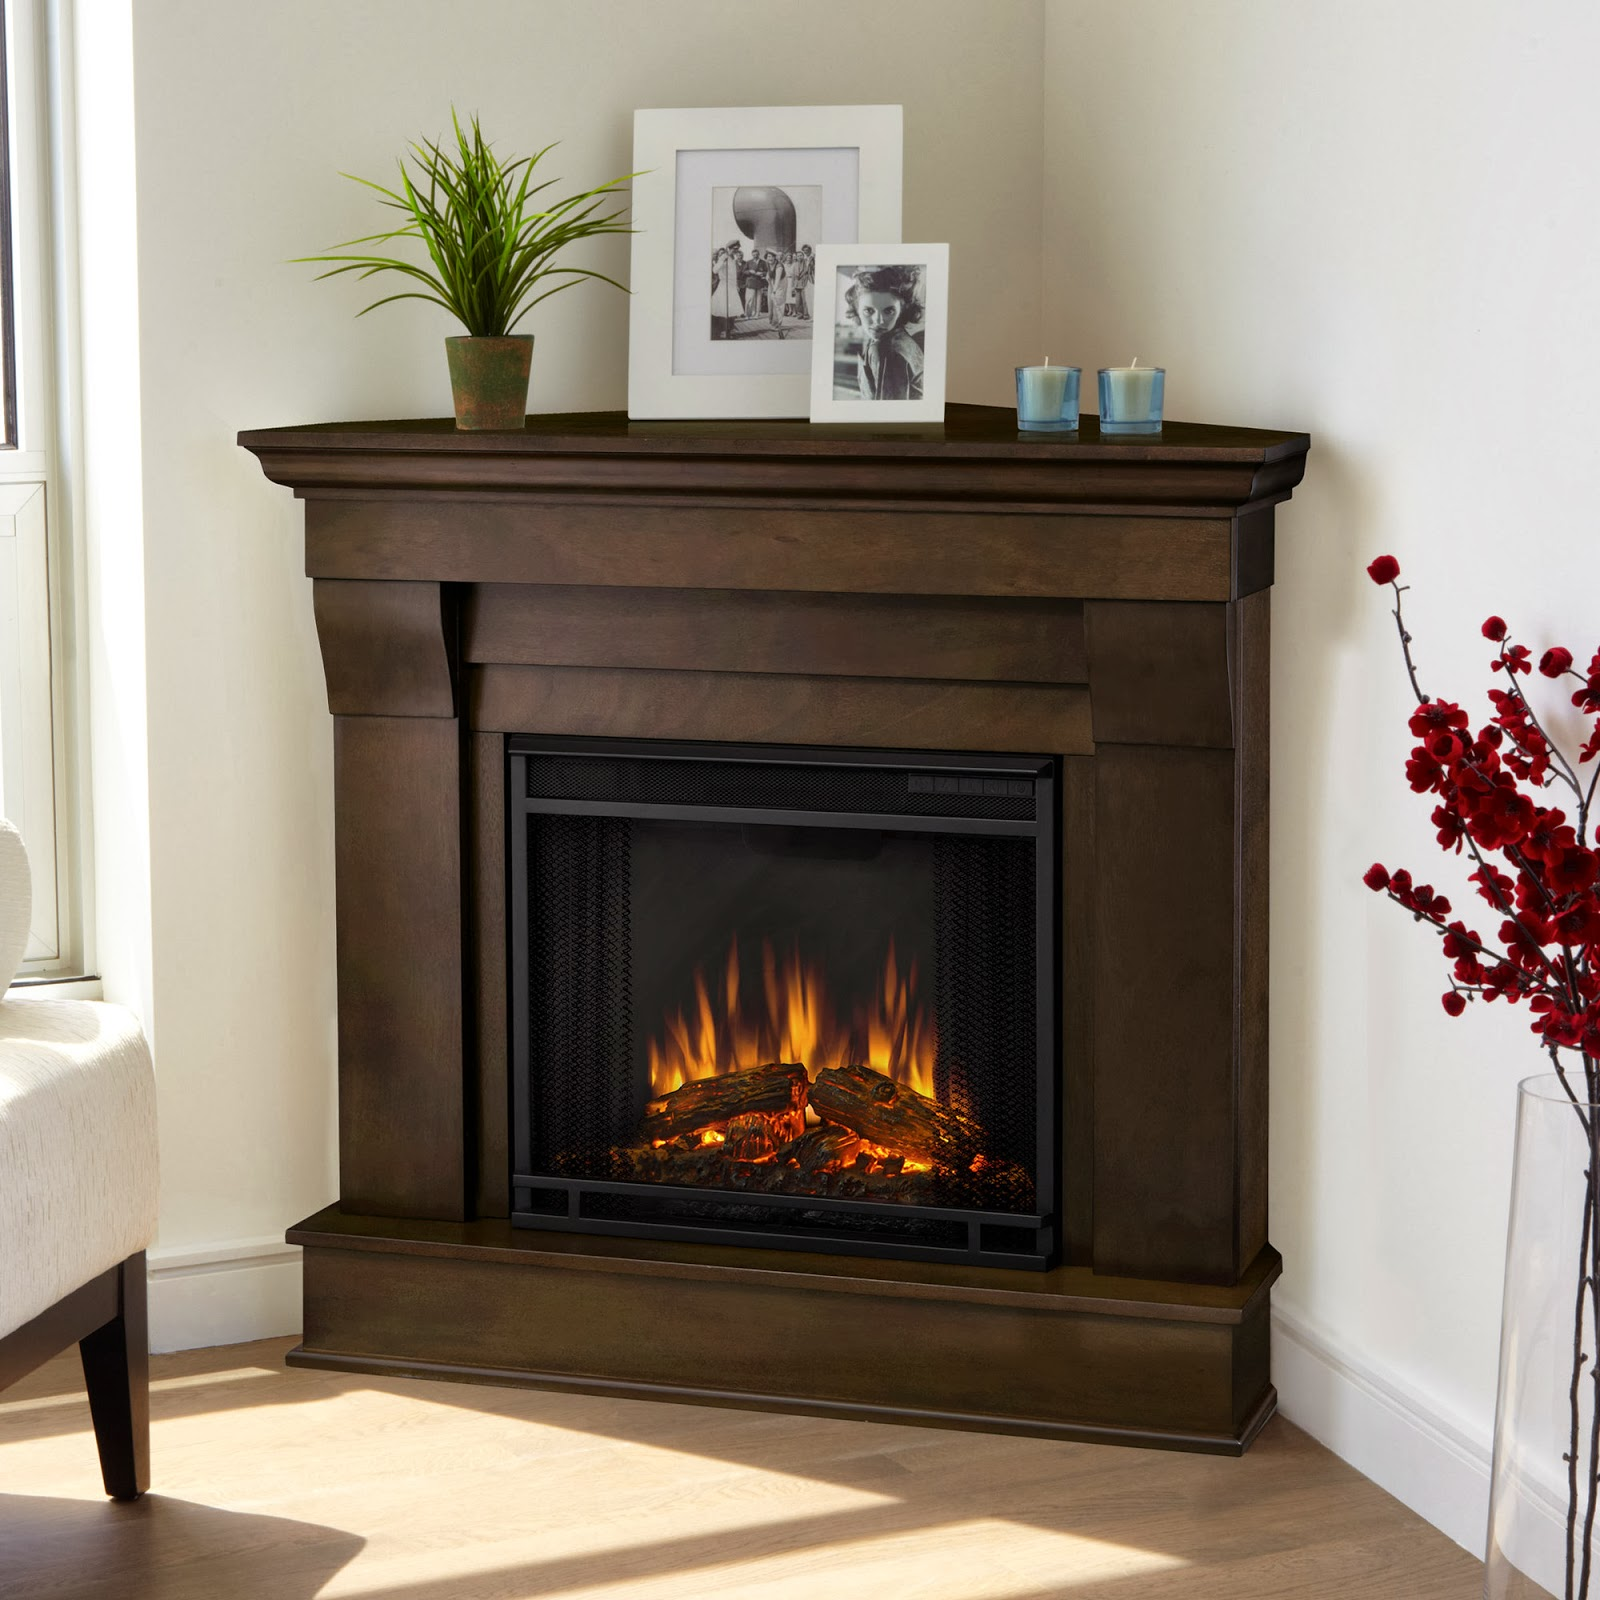 Patio and Yards: Gel Fuel & Electric Fireplaces ...